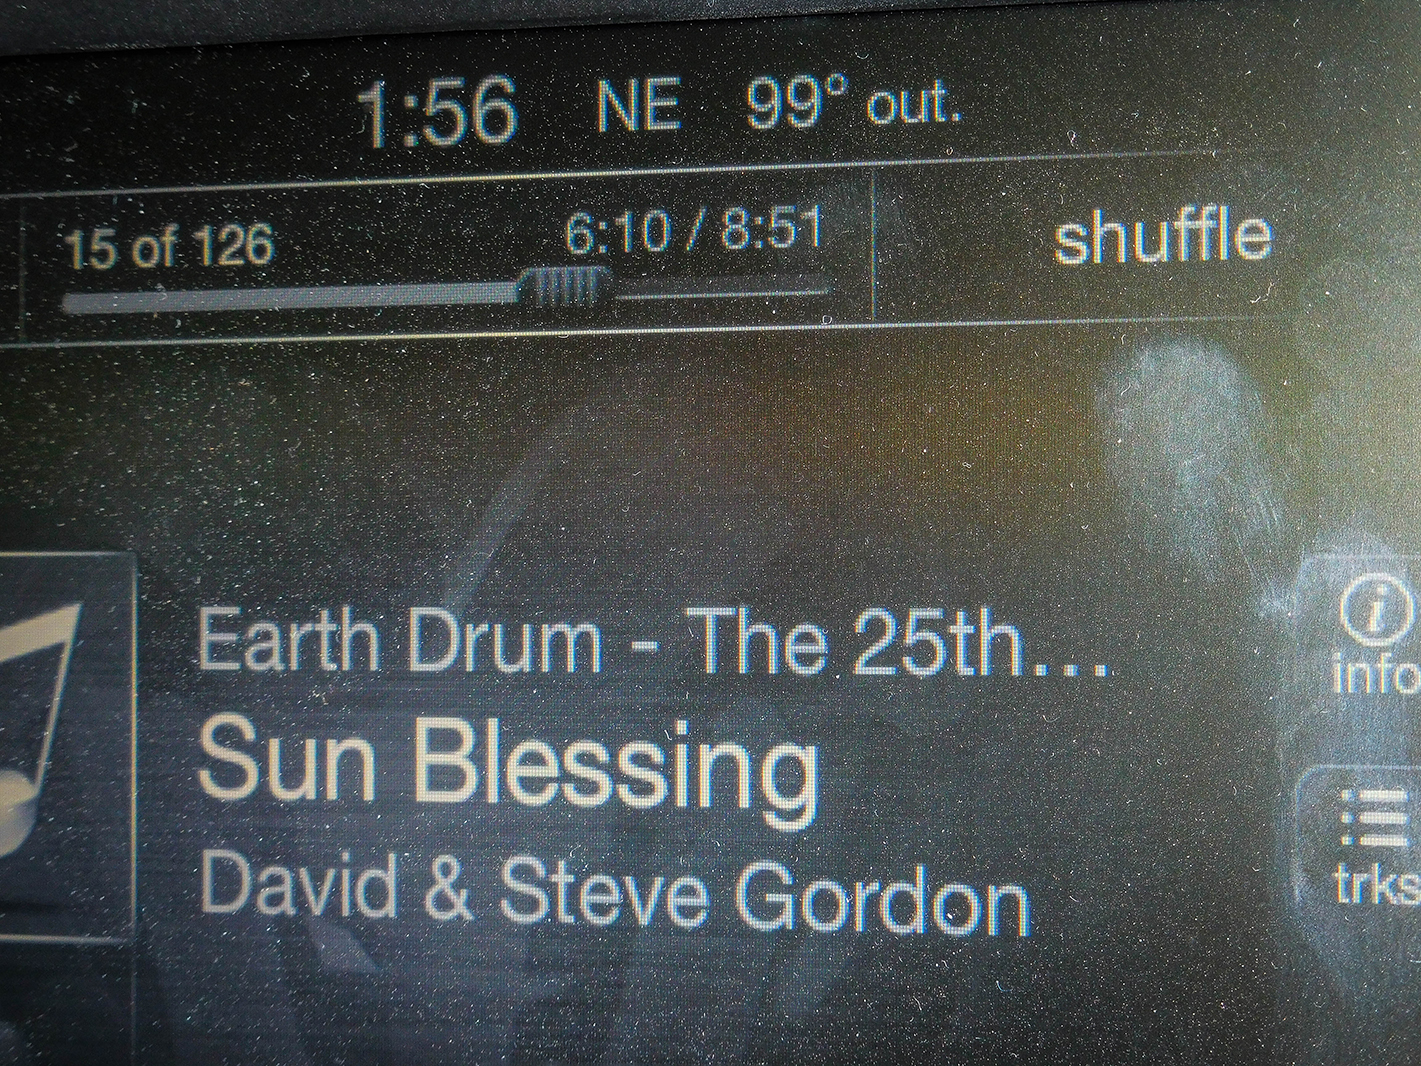 It seemed an appropriate song at 99 degrees on the way to 103 as we drove down into the Verde Valley.